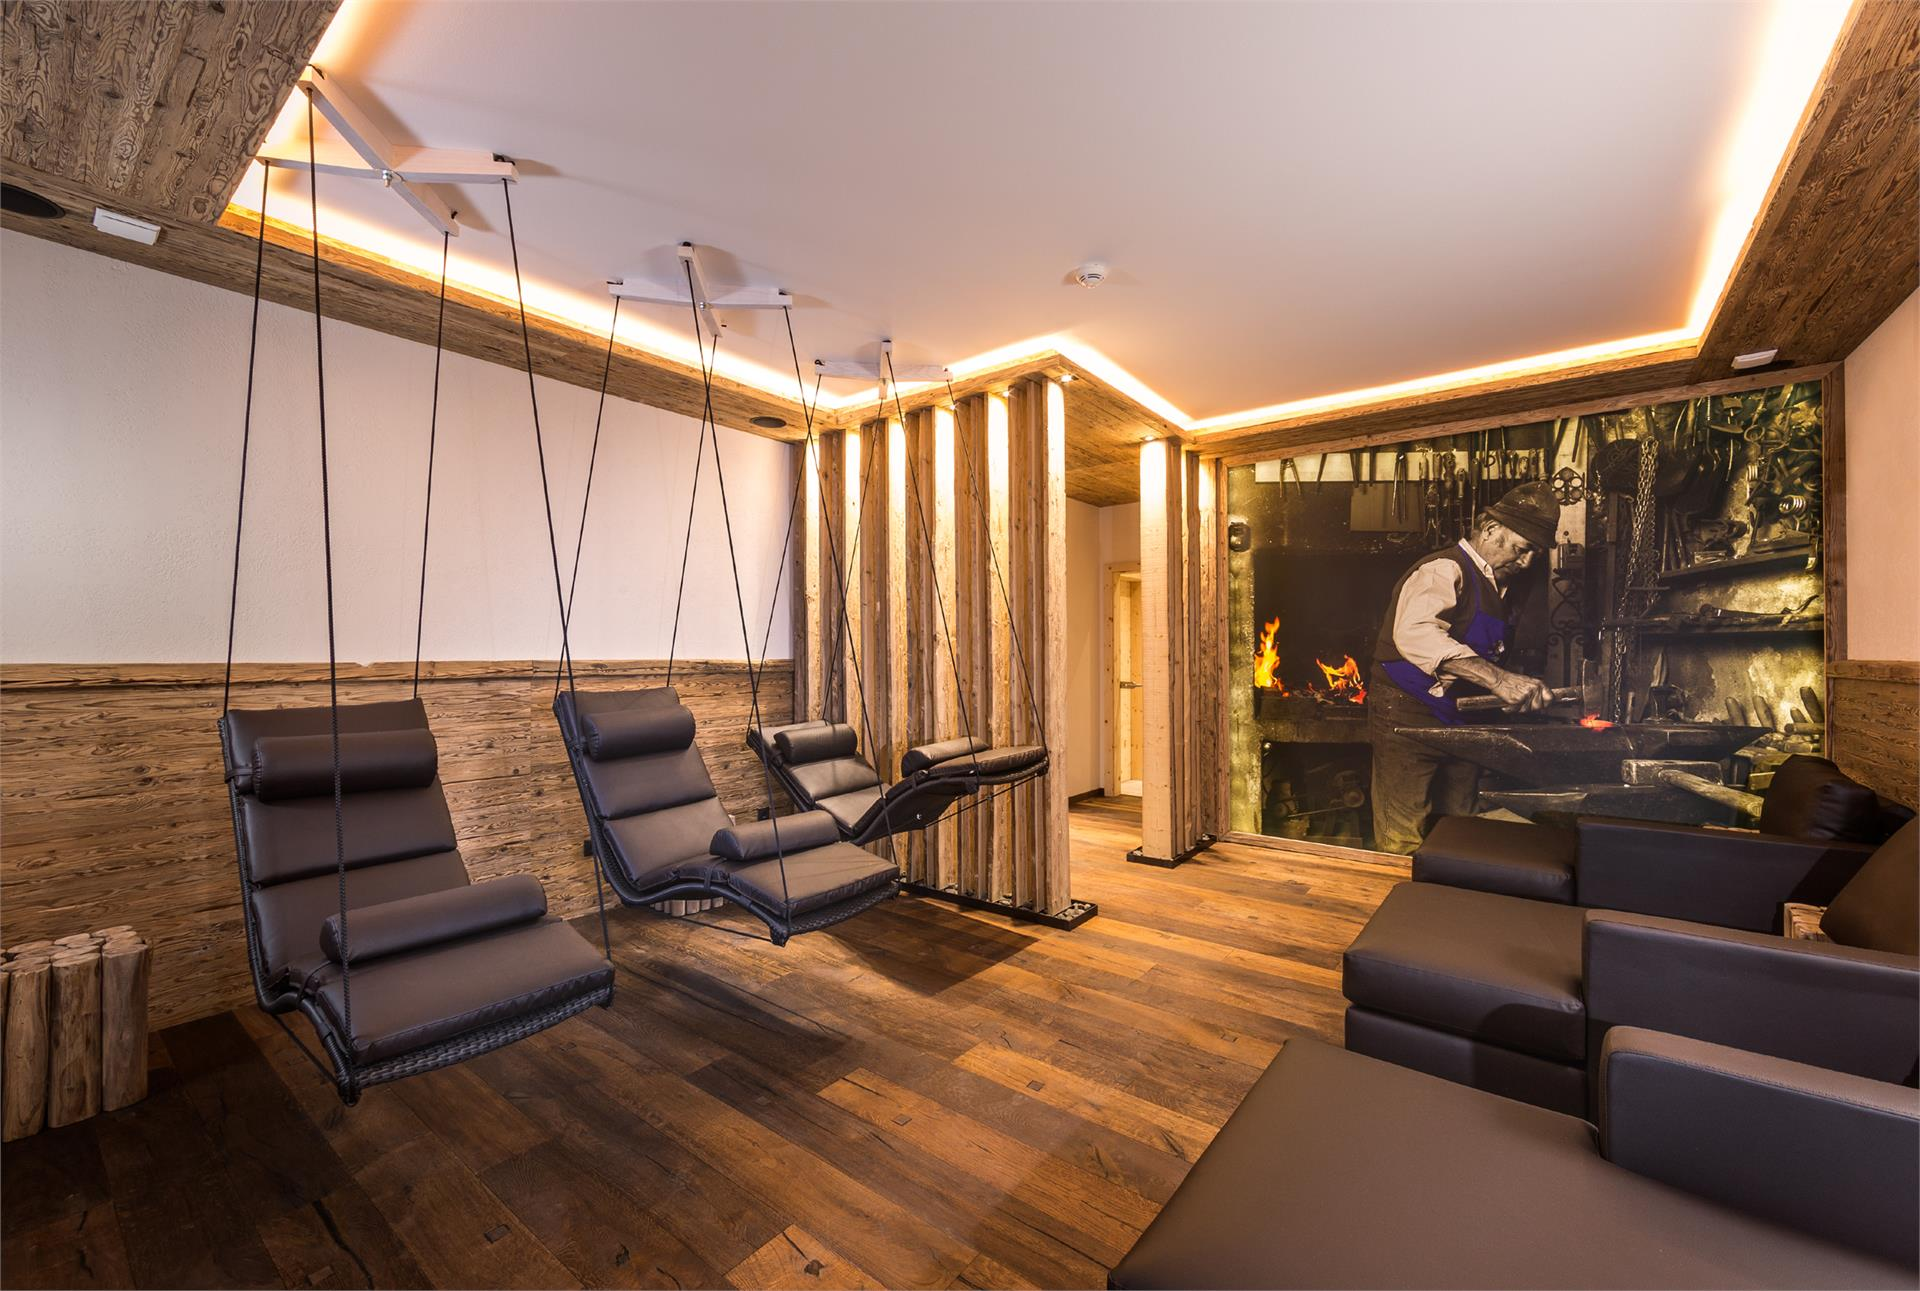 Relax room